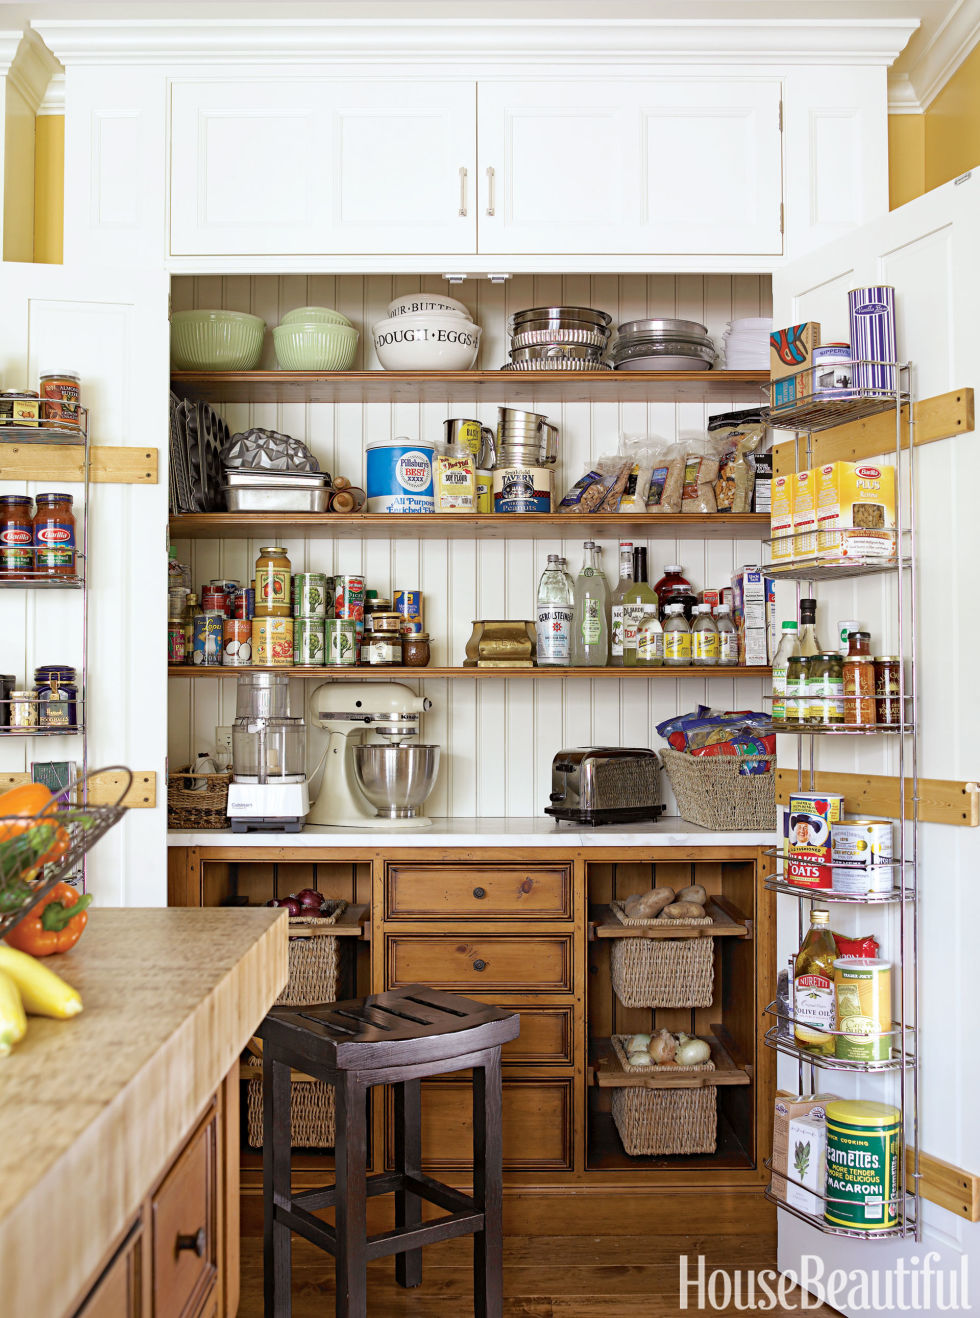 20 unique kitchen storage ideas easy storage solutions for kitchens - Kitchen Countertop Storage Ideas